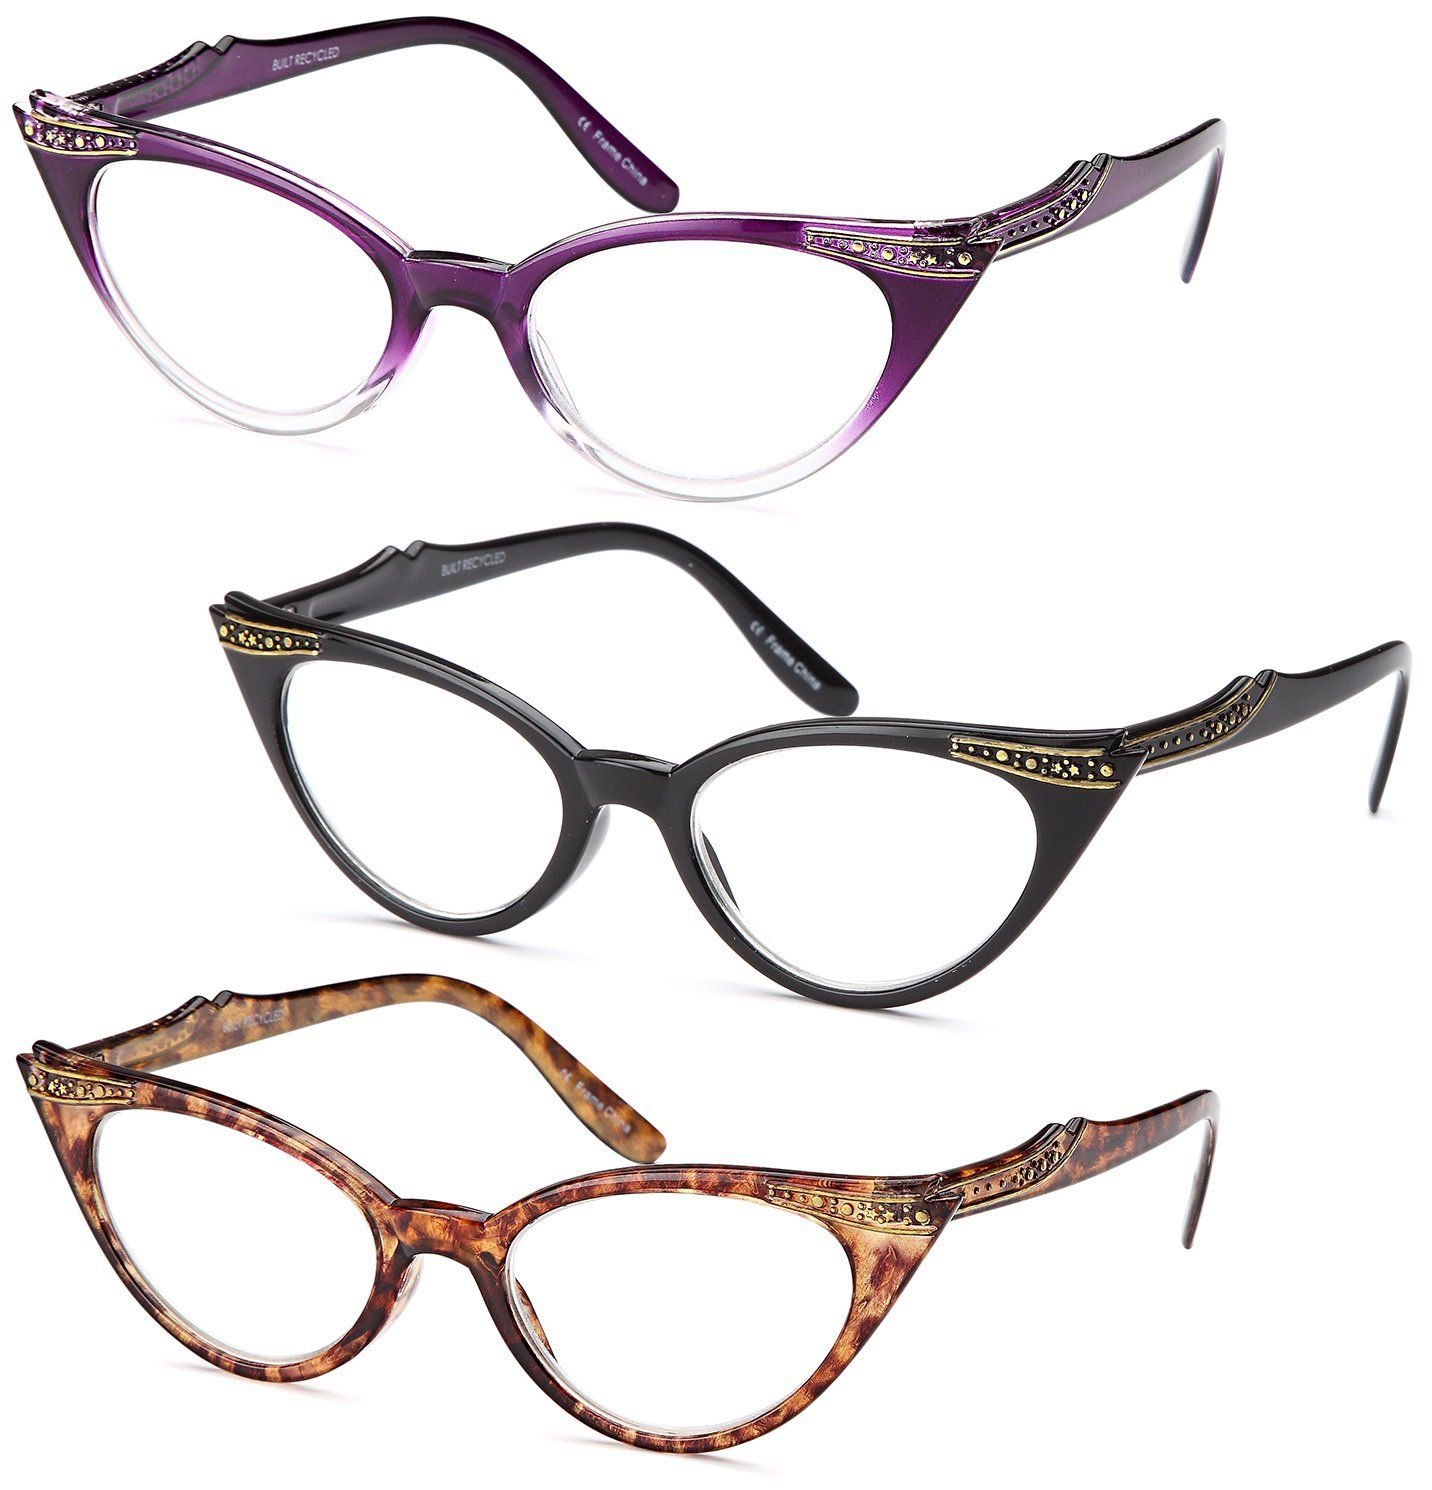 07b1abca827 GAMMA RAY READERS 3 Pairs Ladies  Vintage Cat Eye Readers Quality Reading  Glasses for Women - With +2.00 Magnification